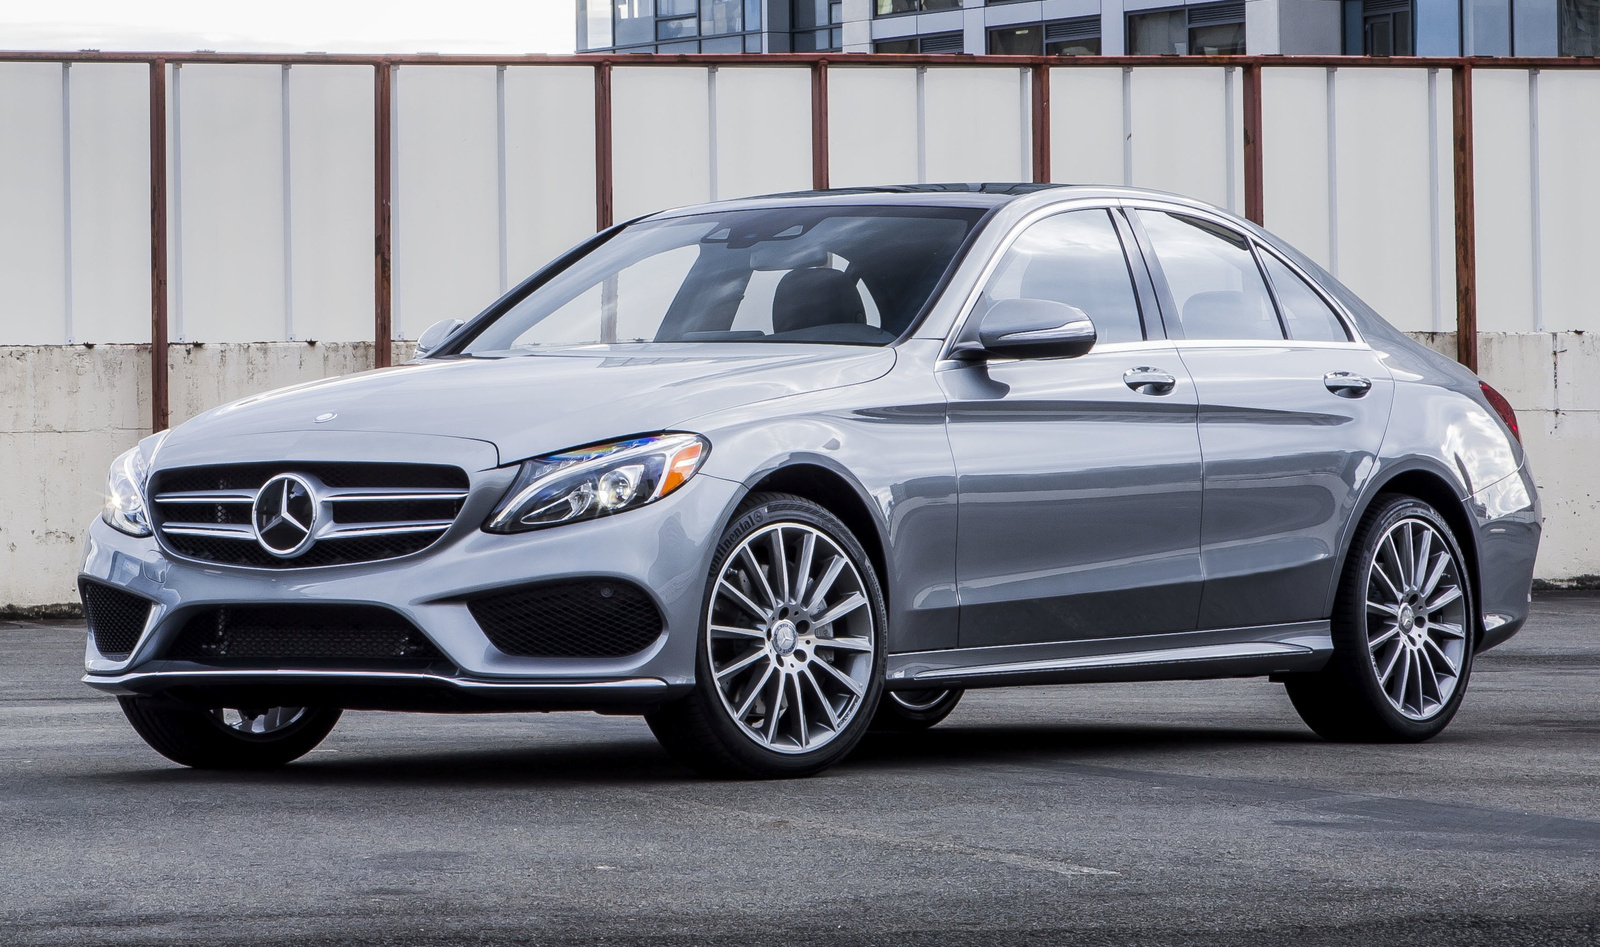 2015 mercedes benz c class review cargurus for Mercedes benz hybrid cars